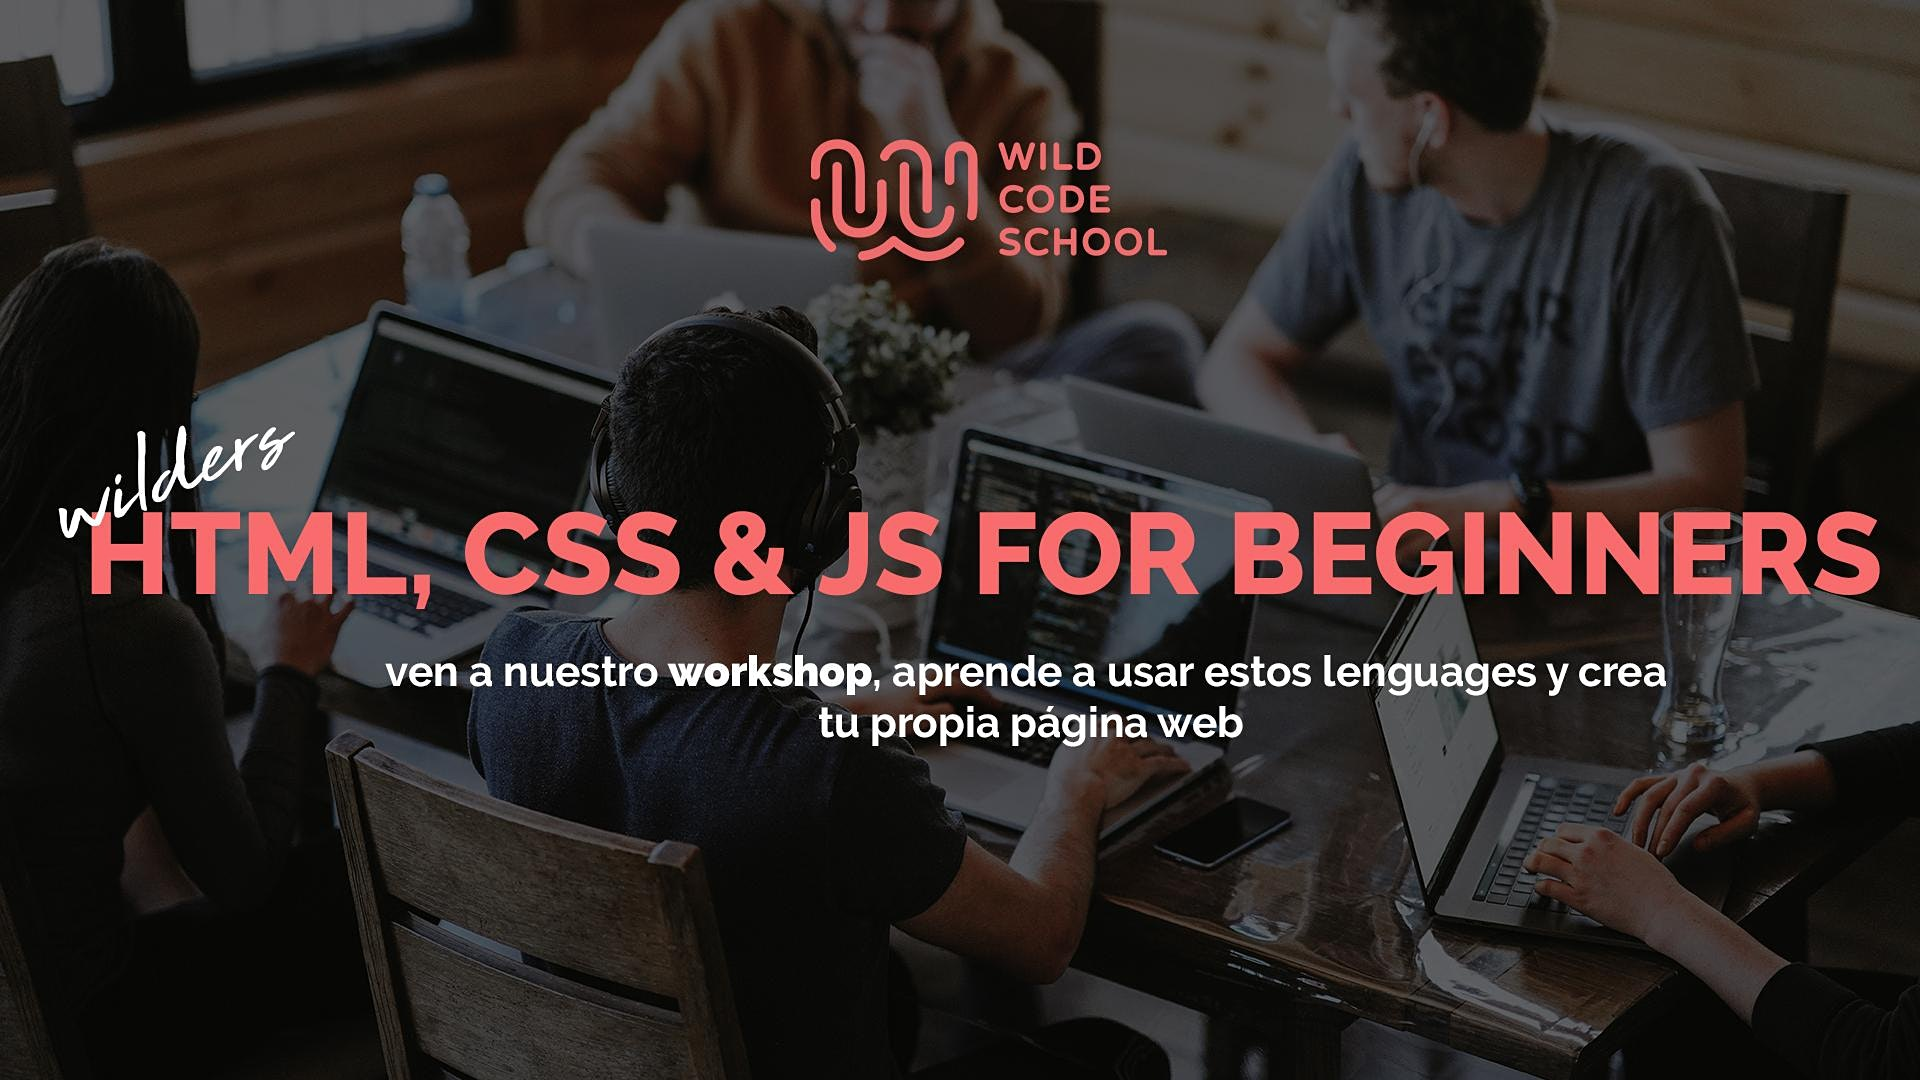 FREE CODING WORKSHOP! Build a Super Pro CV with HTML, CSS and JS